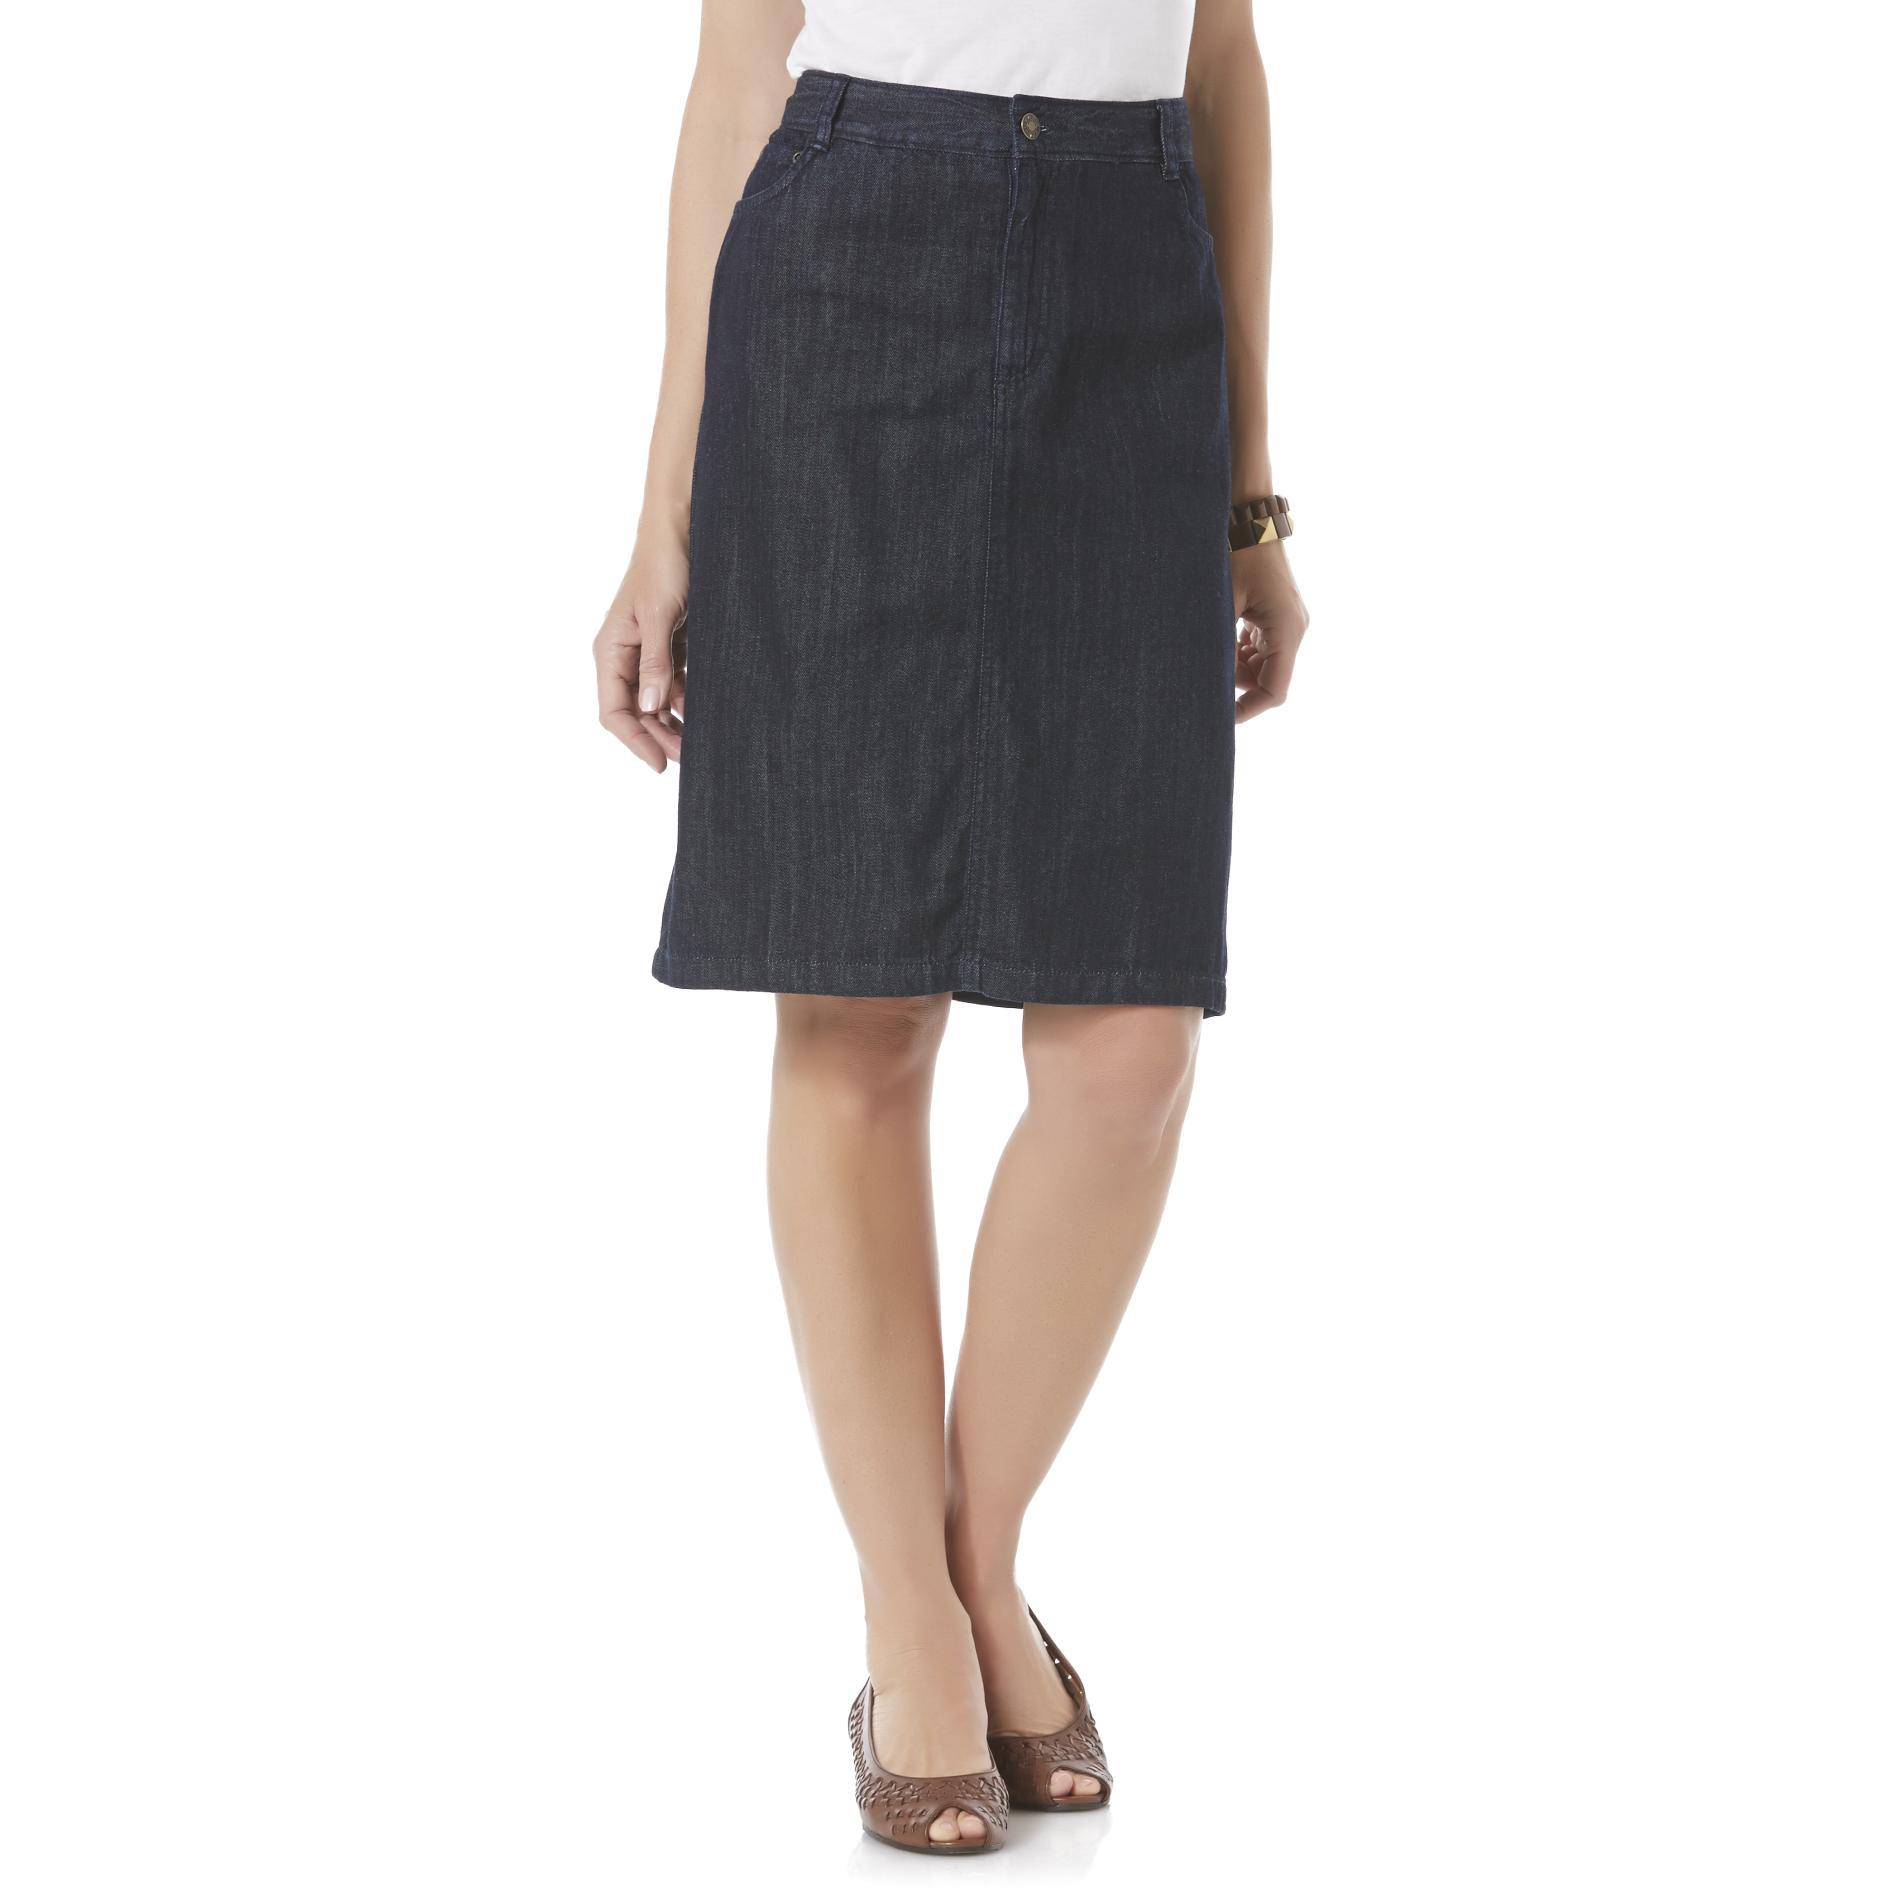 School Skirts Kmart Basic Editions Women 39s Denim Skirt